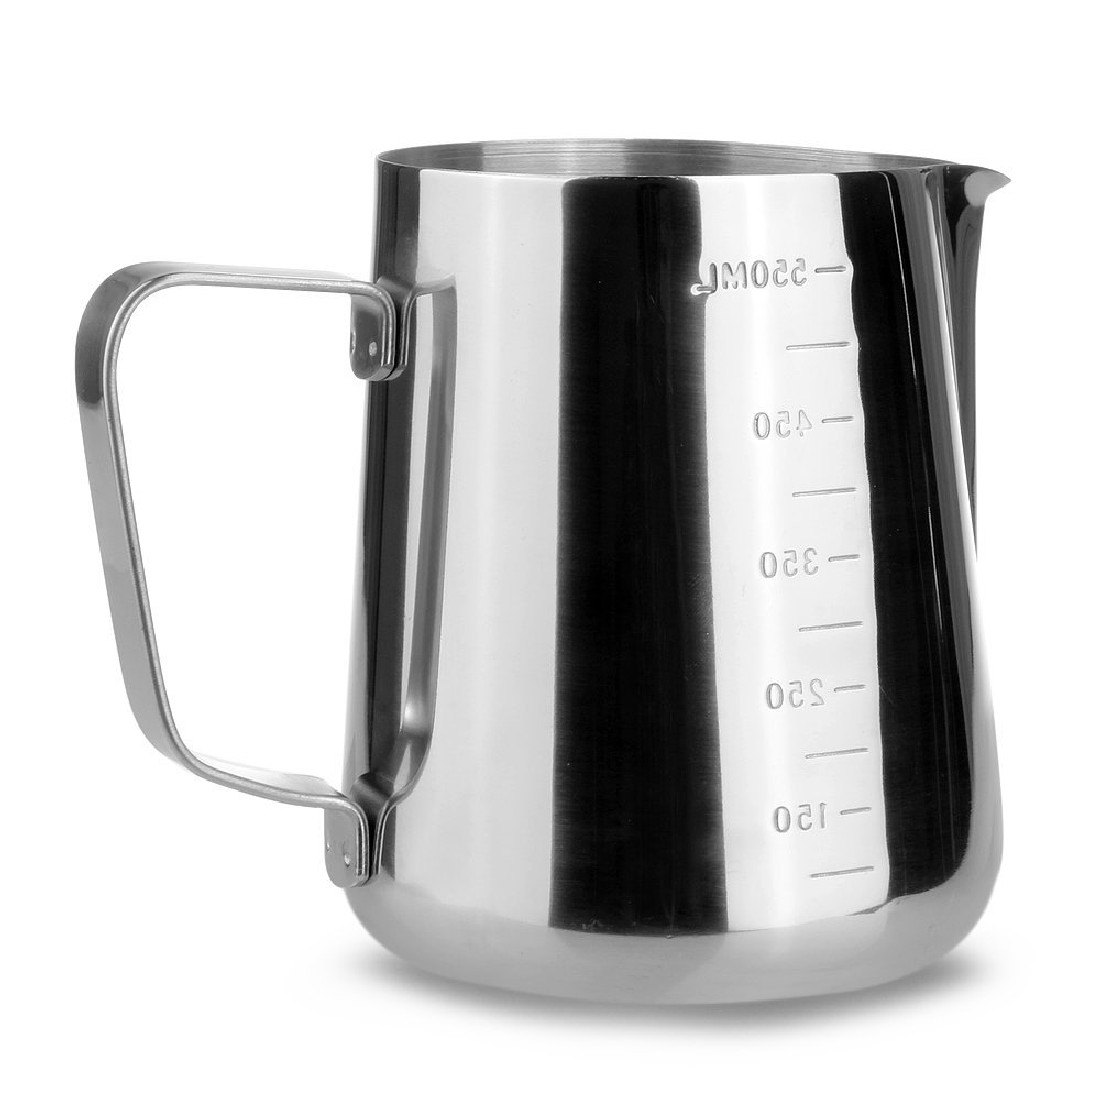 Kitchen Stainless Steel Milk frothing jug Espresso Coffee Pitcher Barista Craft Coffee Latte Milk Frothing Jug PitcherKitchen Stainless Steel Milk frothing jug Espresso Coffee Pitcher Barista Craft Coffee Latte Milk Frothing Jug Pitcher